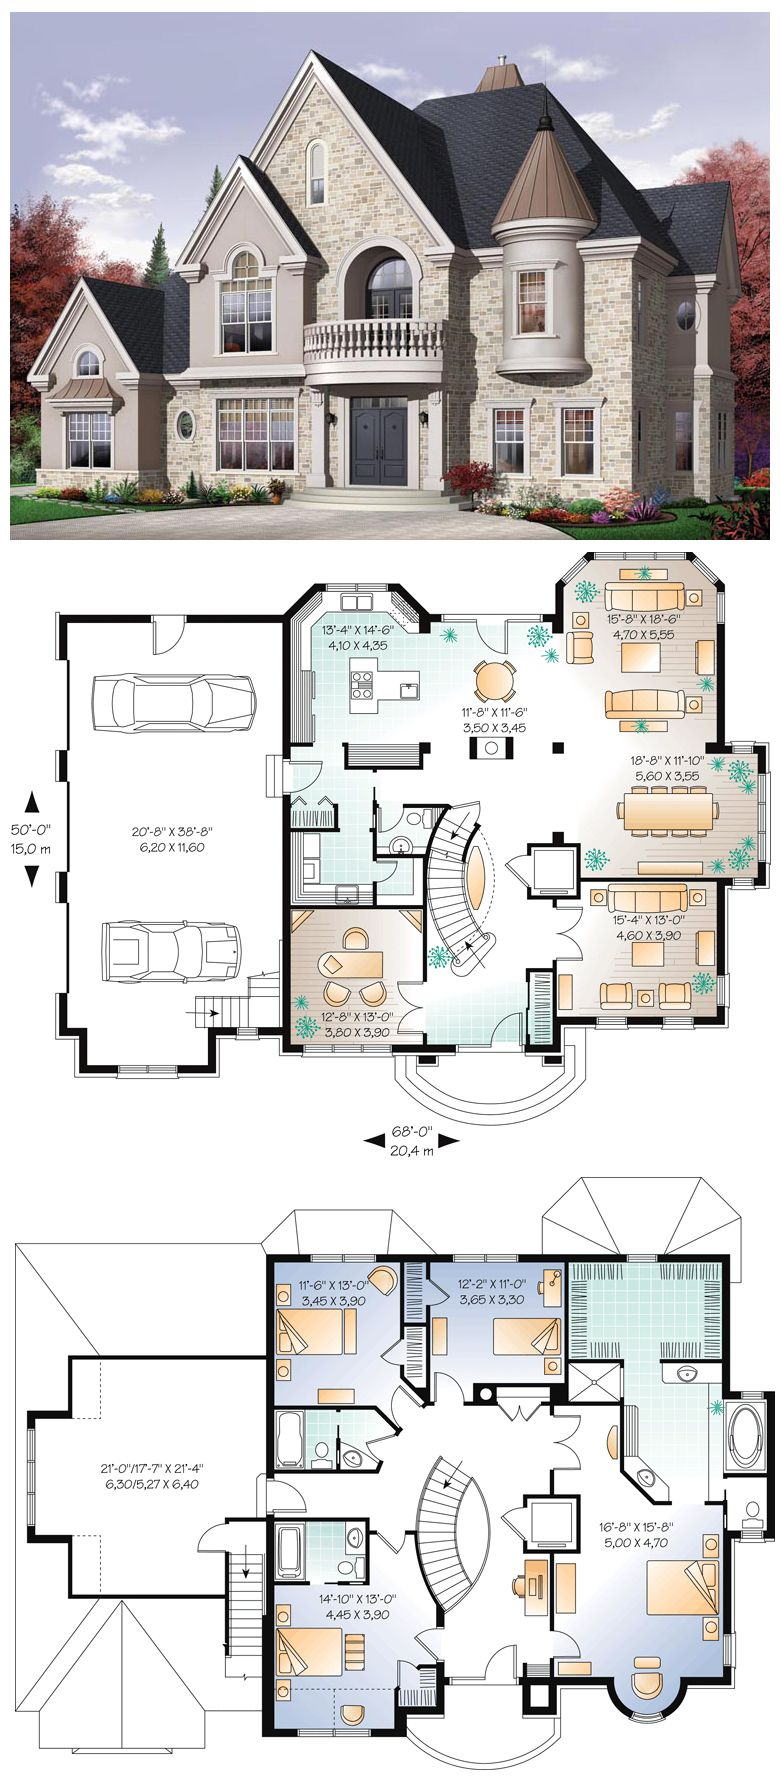 European Style House Plan 64847 With 4 Bed 4 Bath 3 Car Garage Luxury House Plans House Plans Basement House Plans